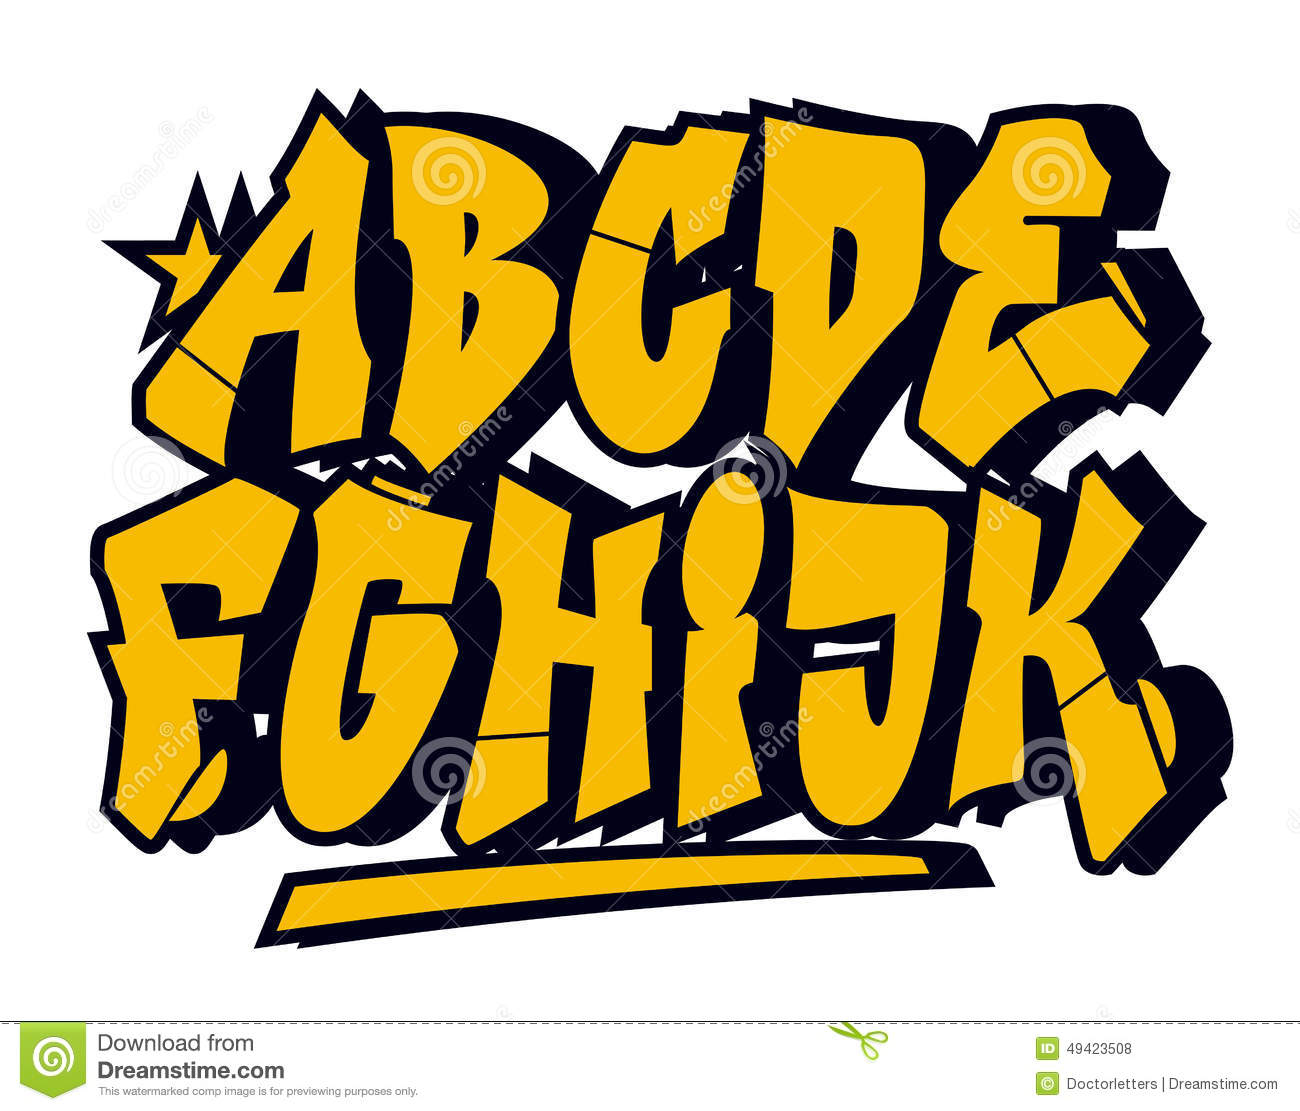 Graffiti fonts stock vector. Illustration of urban, graffiti.